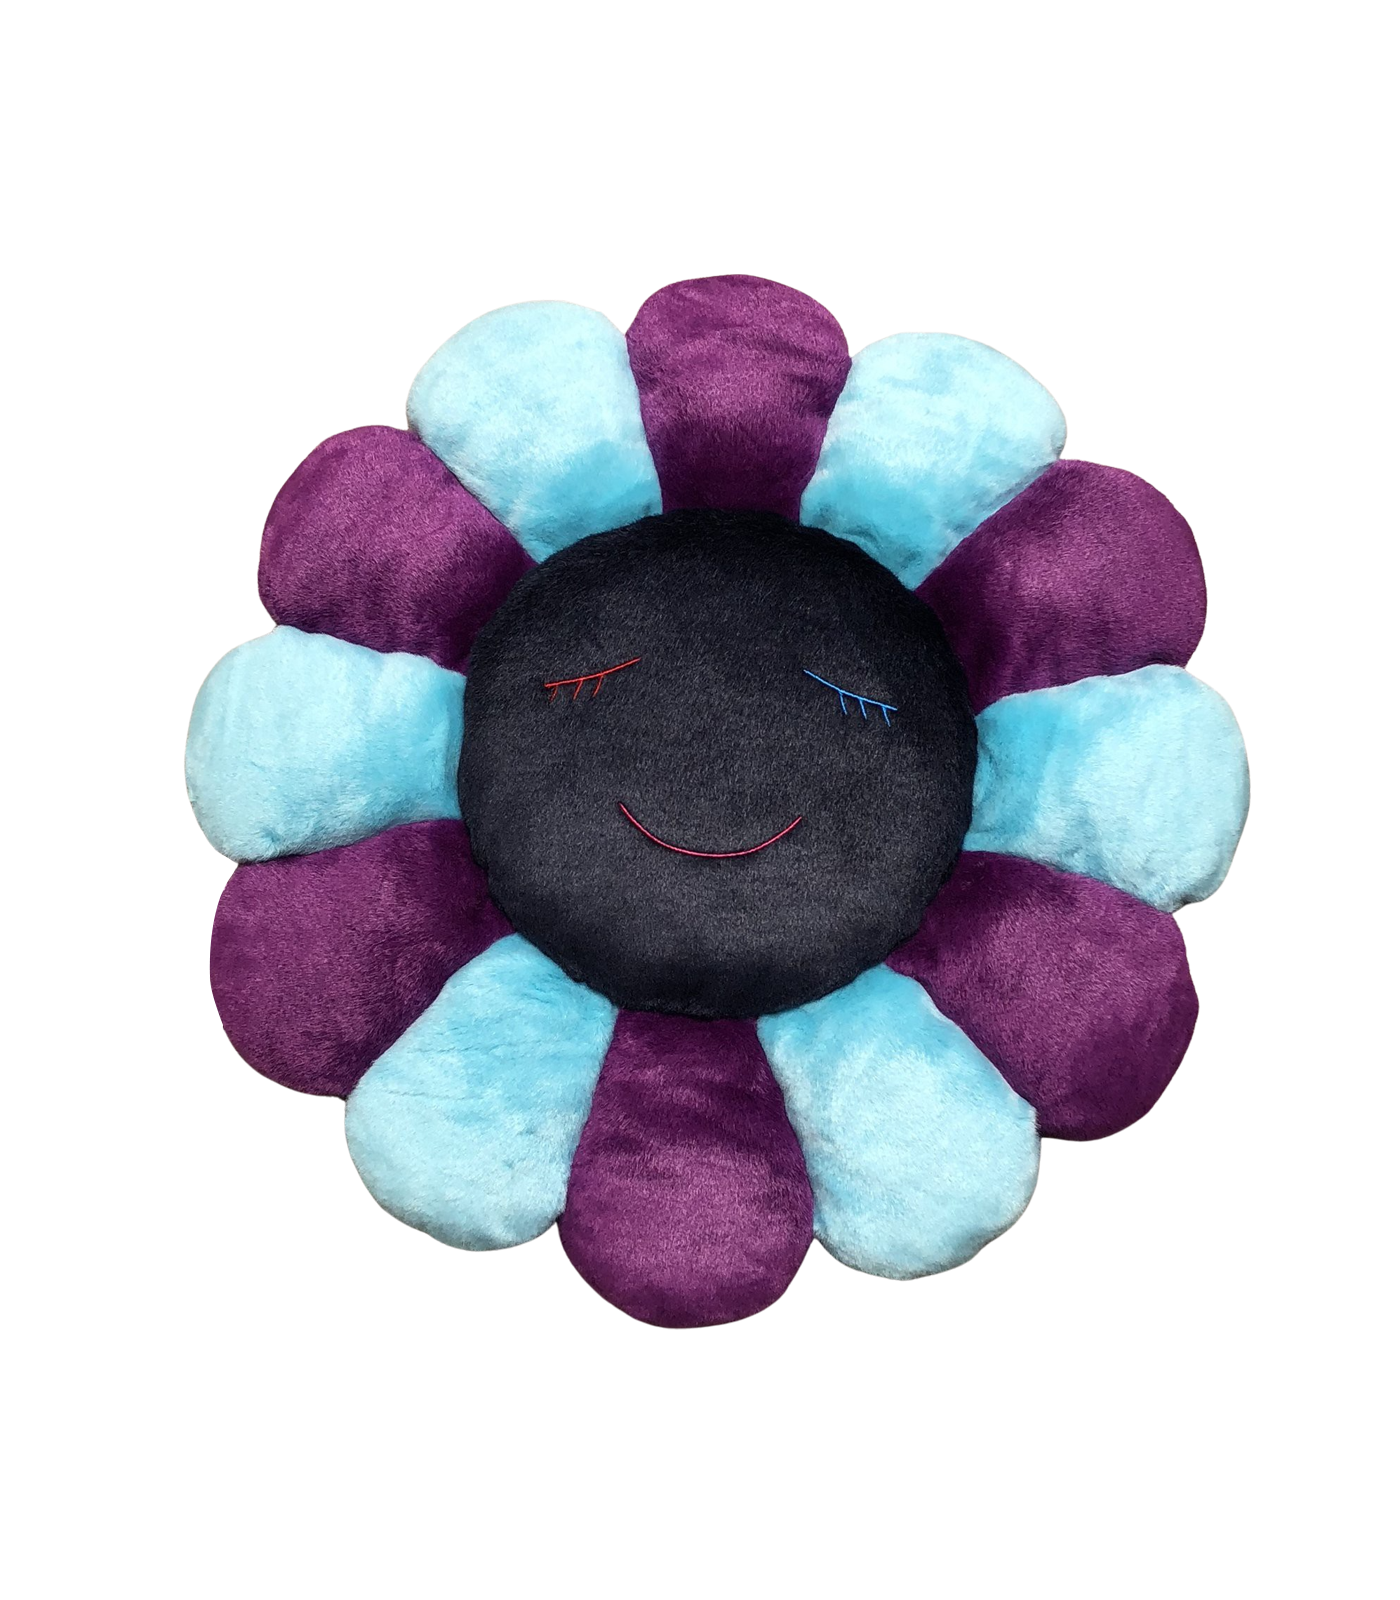 MURAKAMI FLOWER CUSHION 1M - BLUE PURPLE & NAVY